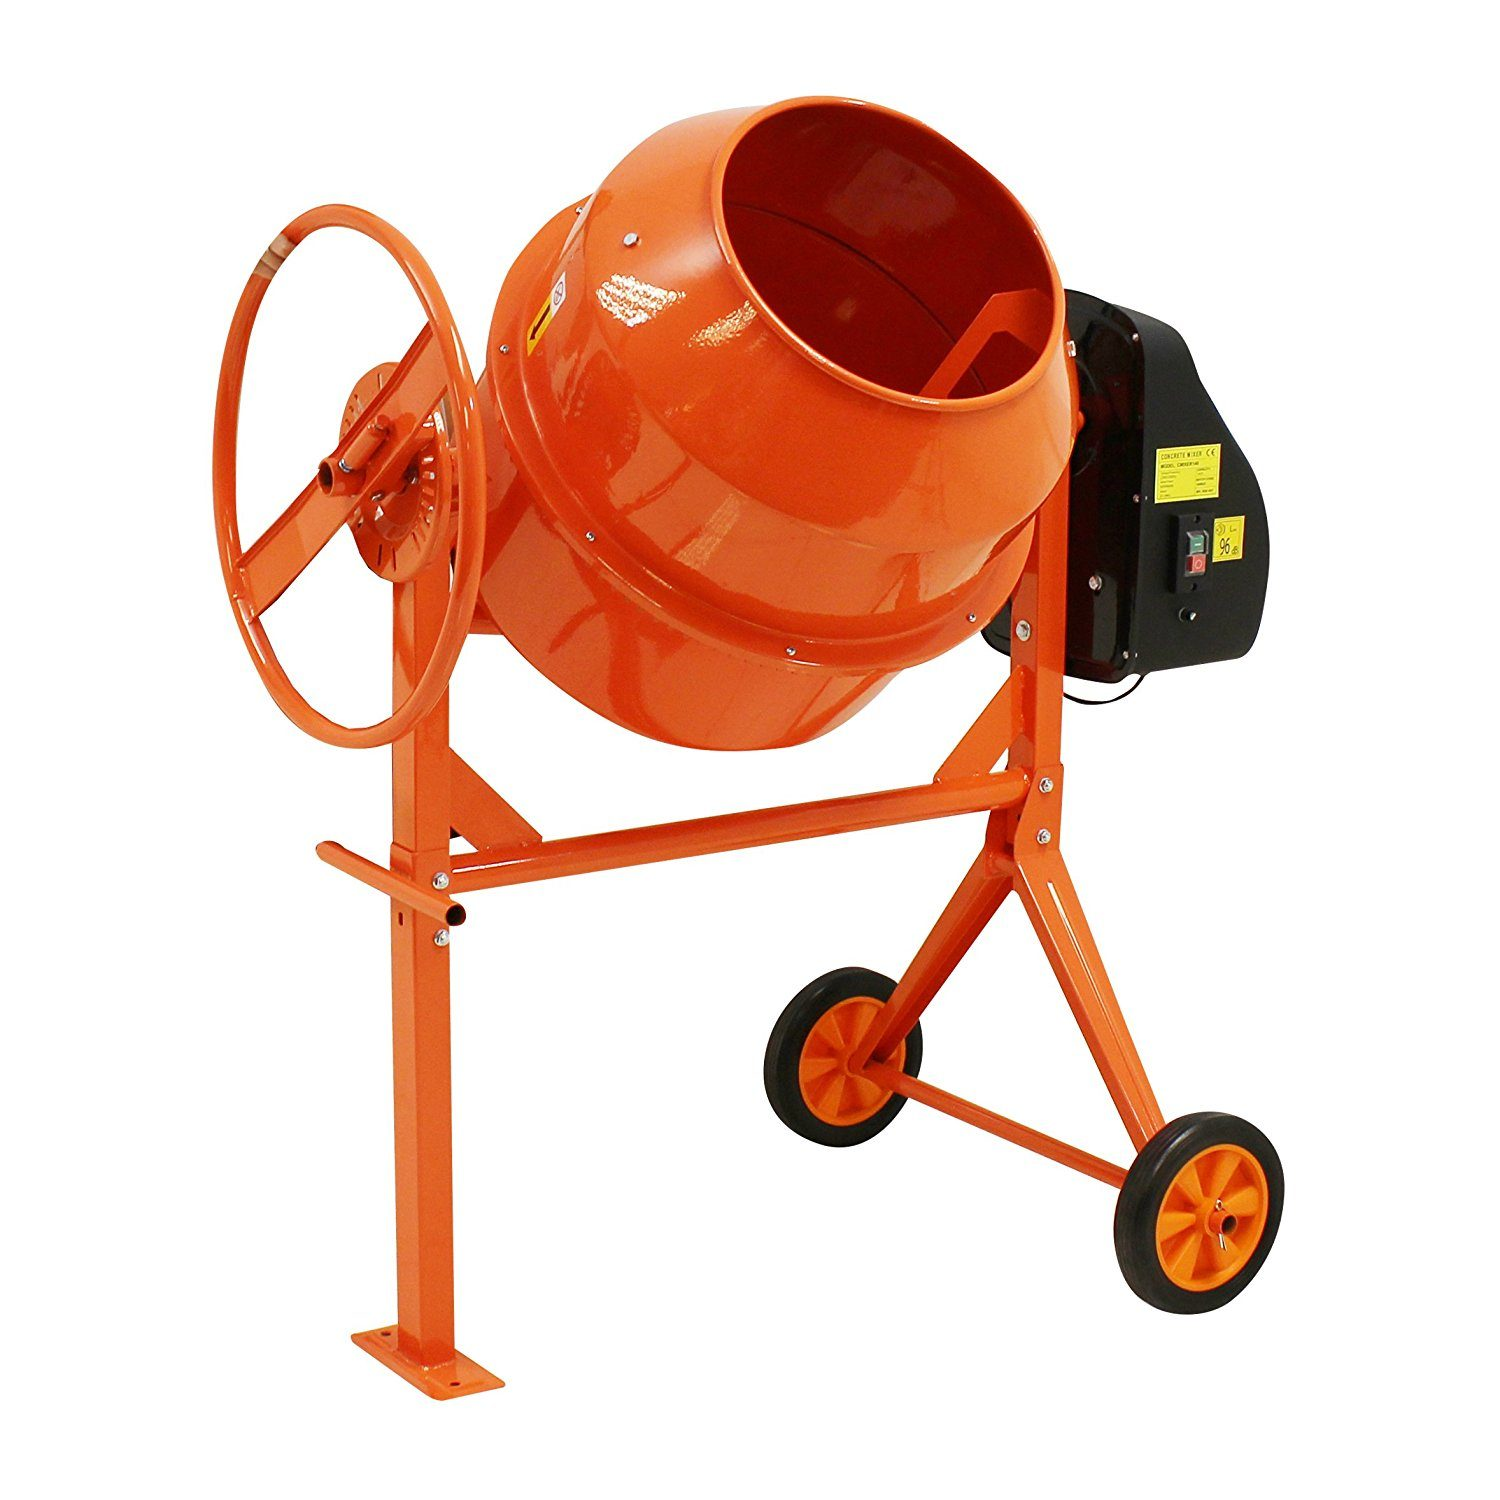 number 3 rated cement mixer